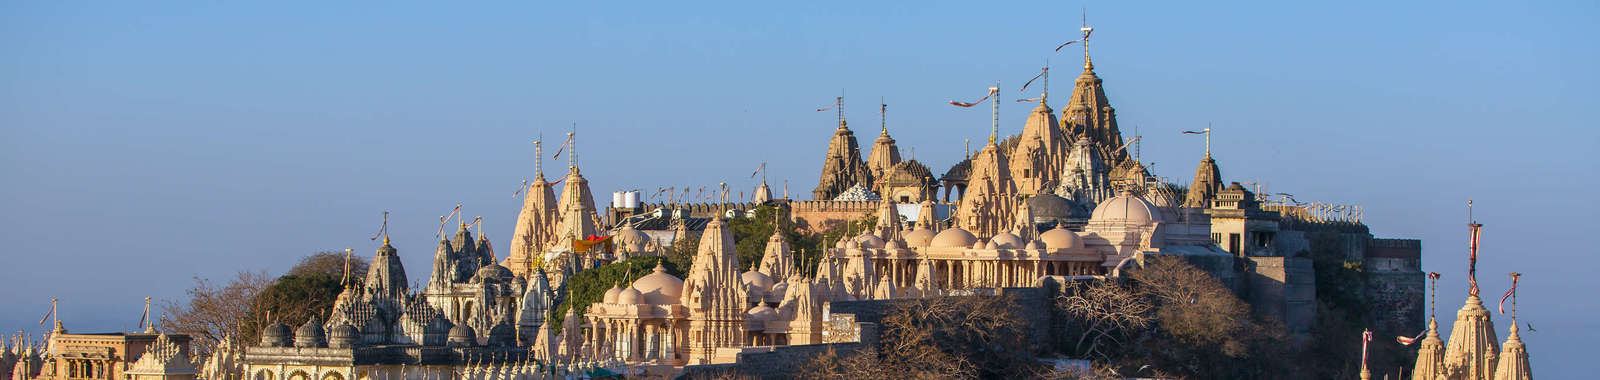 An introductory tour exploring the culturally and architecturally distinct state of Gujarat in India